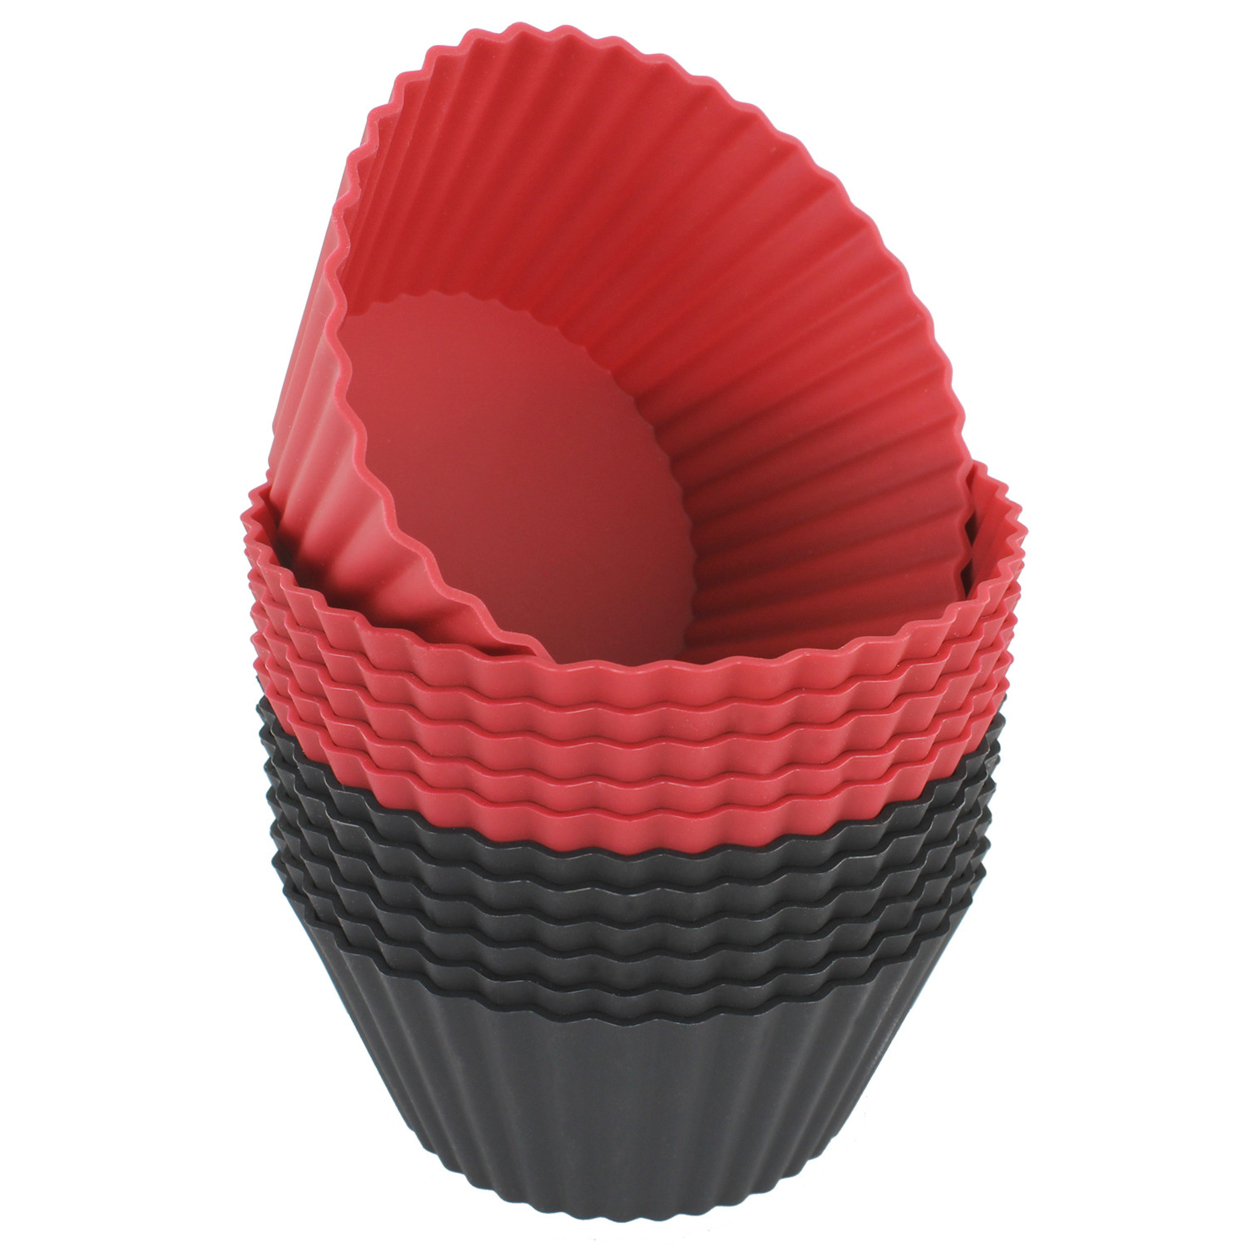 Freshware Silicone Cupcake Liners / Baking Cups - 12-Pack Jumbo Muffin Molds, 3-6/8 inch Round, Red and Black Colors 55f5e579a3771c296d8b9cd8